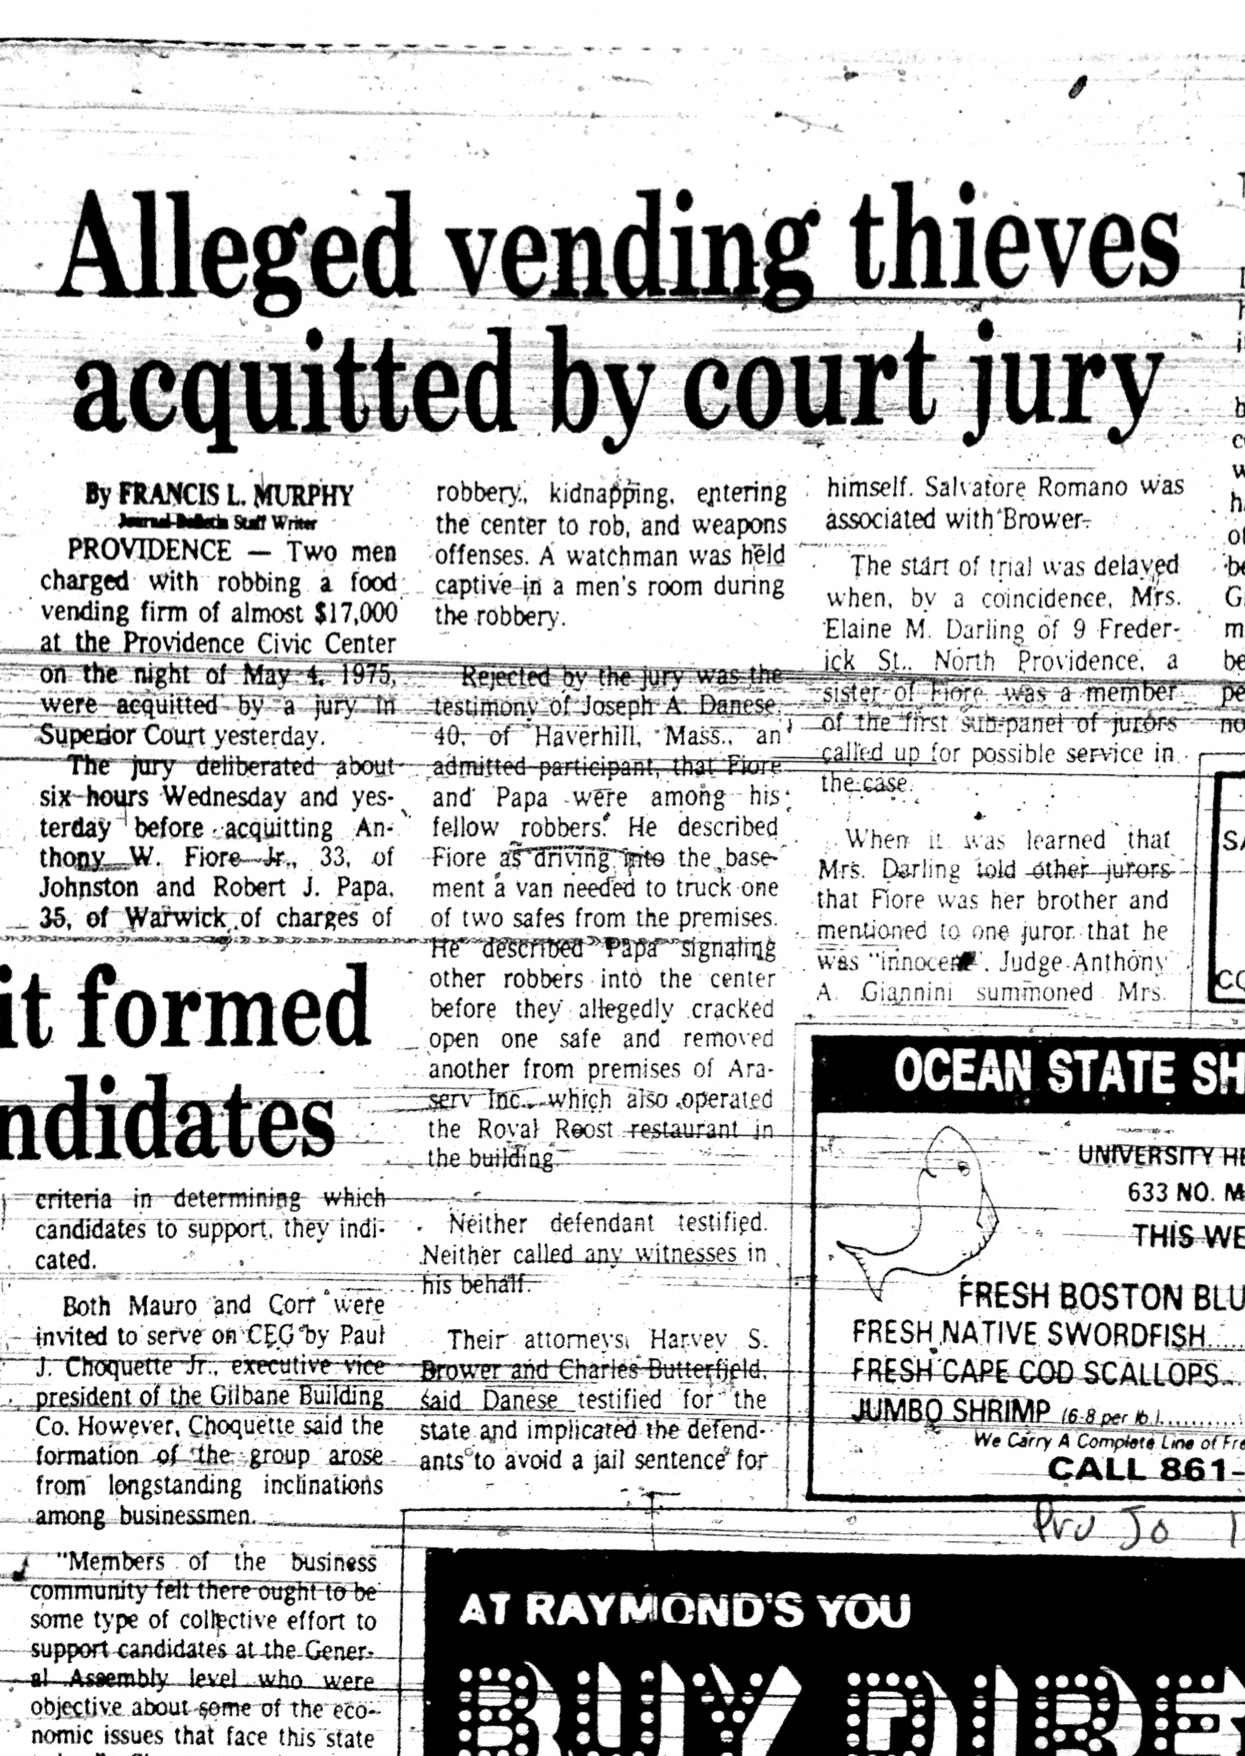 A news story detailing Tony Fiore's acquittal on robbery charges. It explains how Tony's sister, Elaine Darling, was originally picked to serve on the jury at his trial.  Courtesy of the Providence Journal.